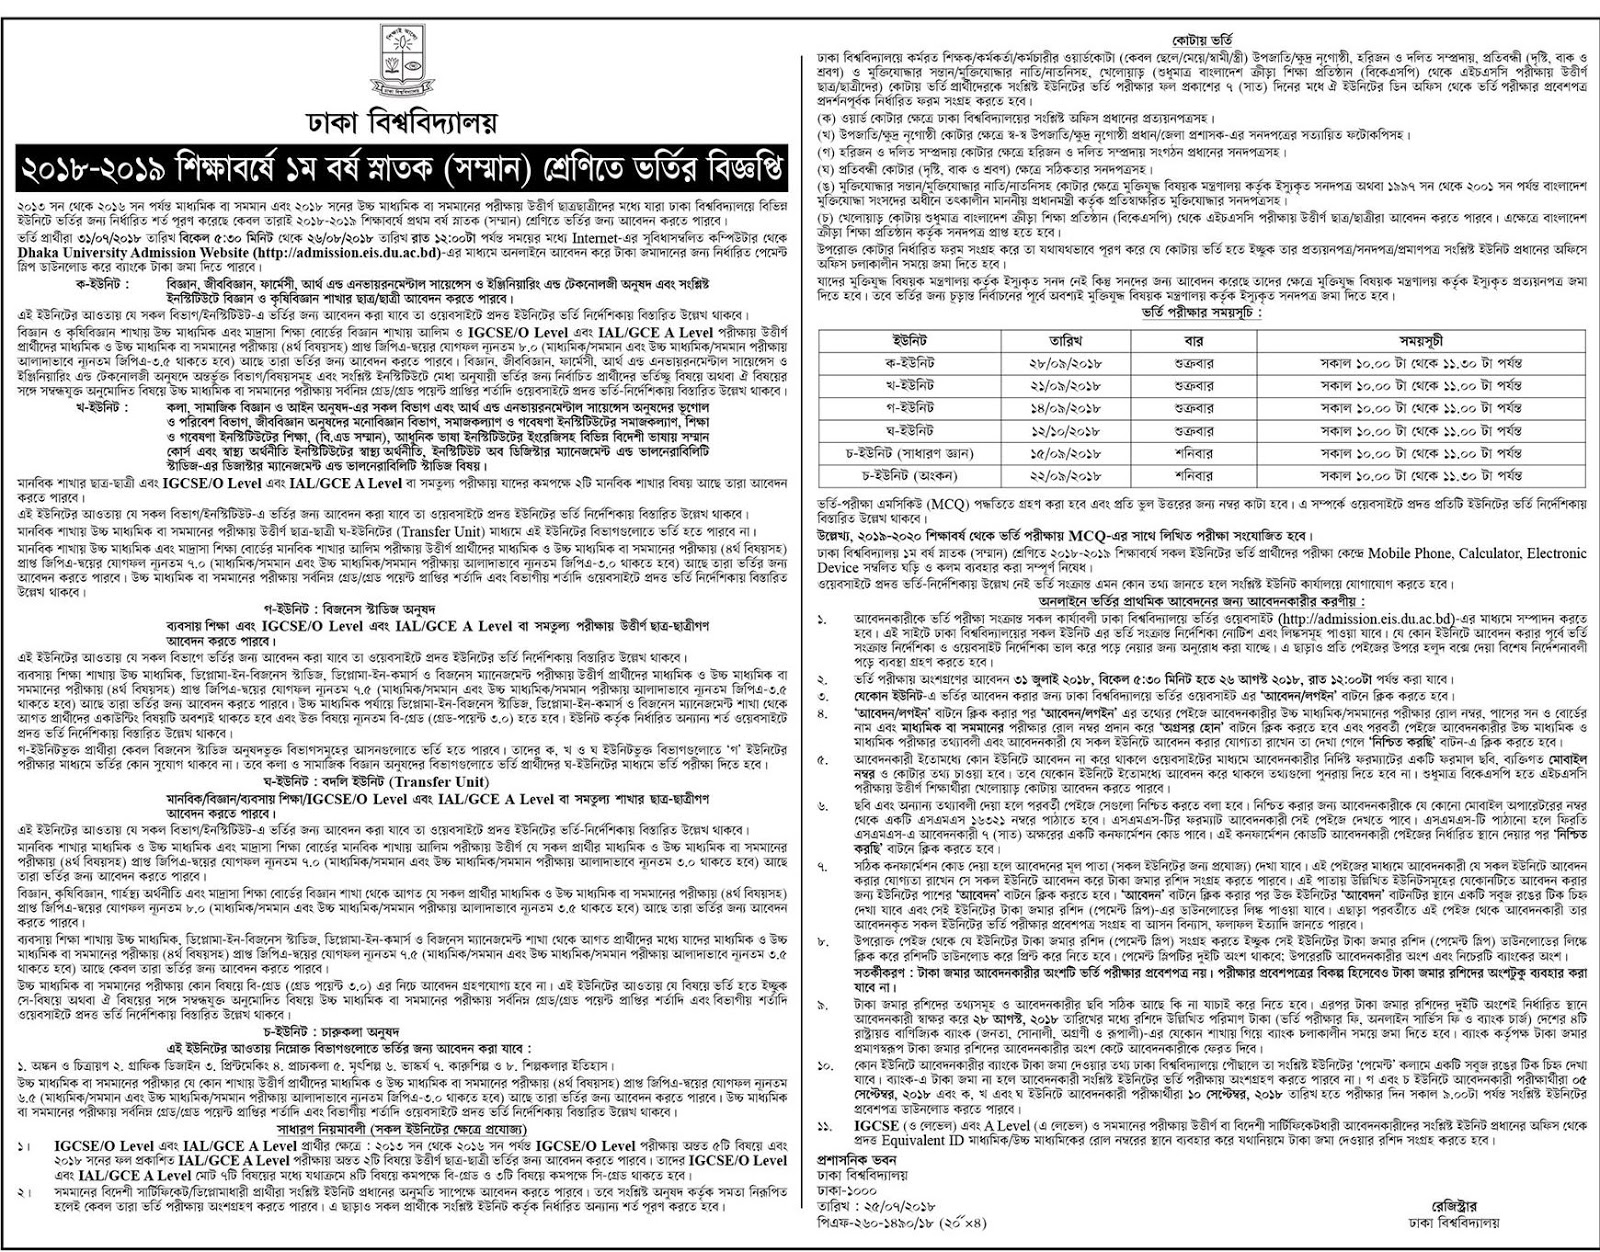 University of Dhaka Admission Test Circular 2018-19